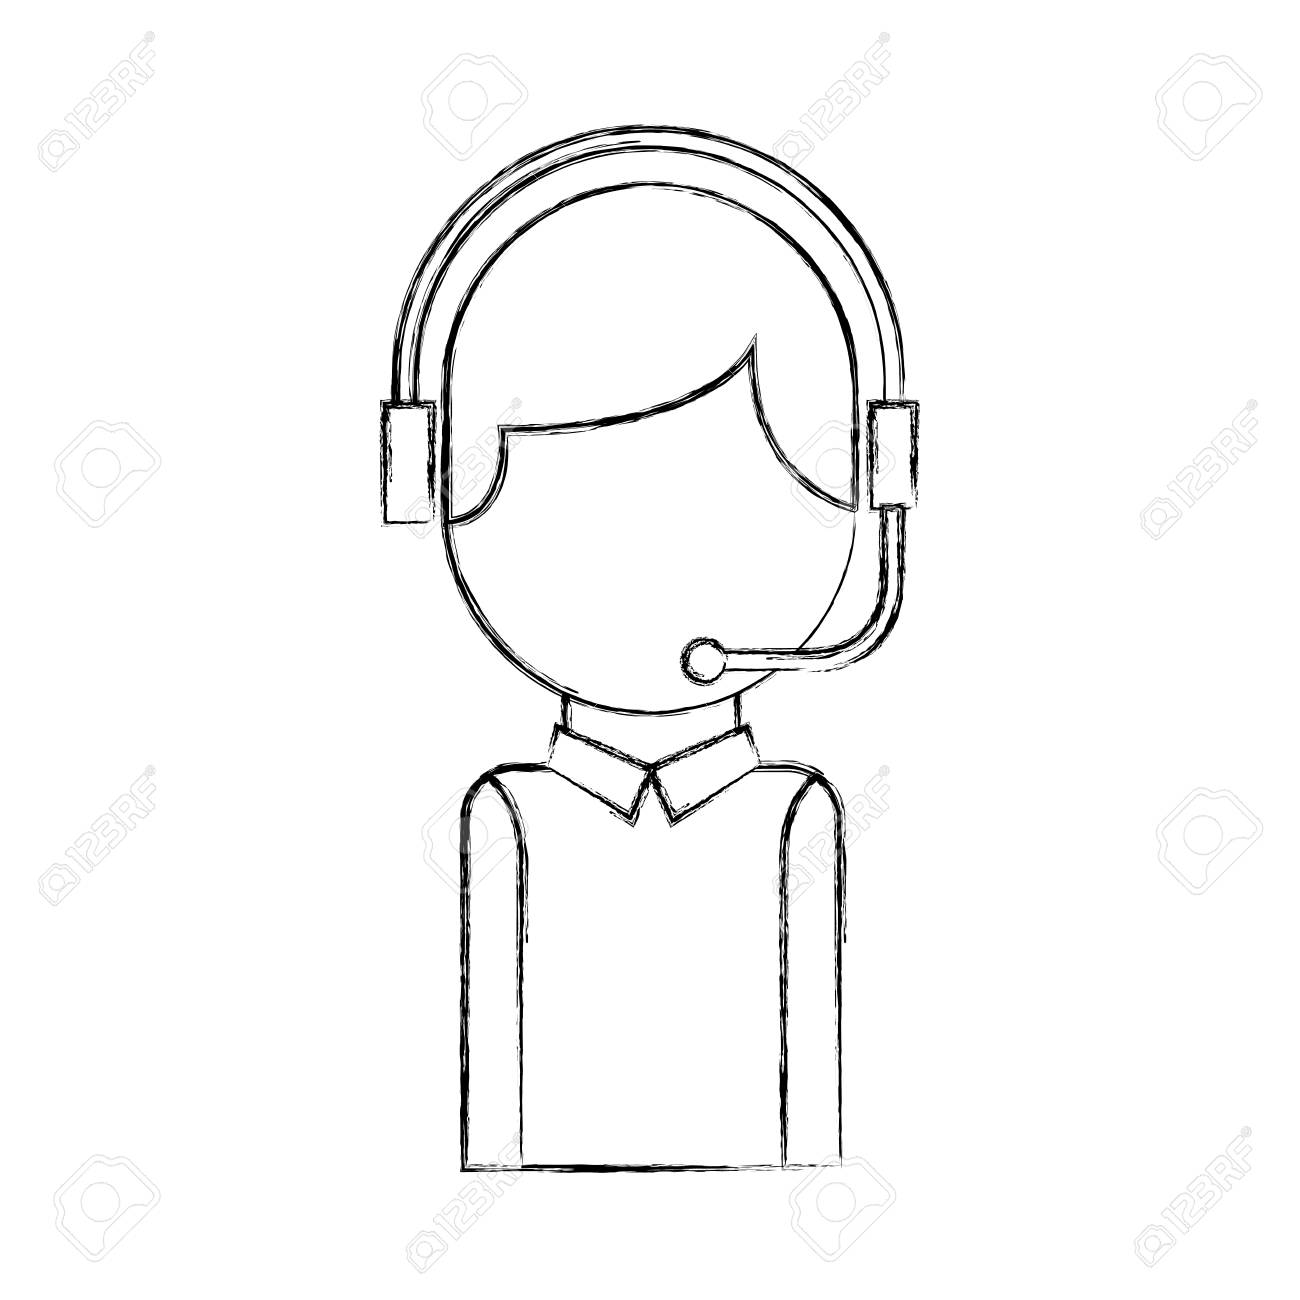 Call Center Operator With Phone Headset Vector Illustration Royalty Free Cliparts Vectors And Stock Illustration Image 86641194